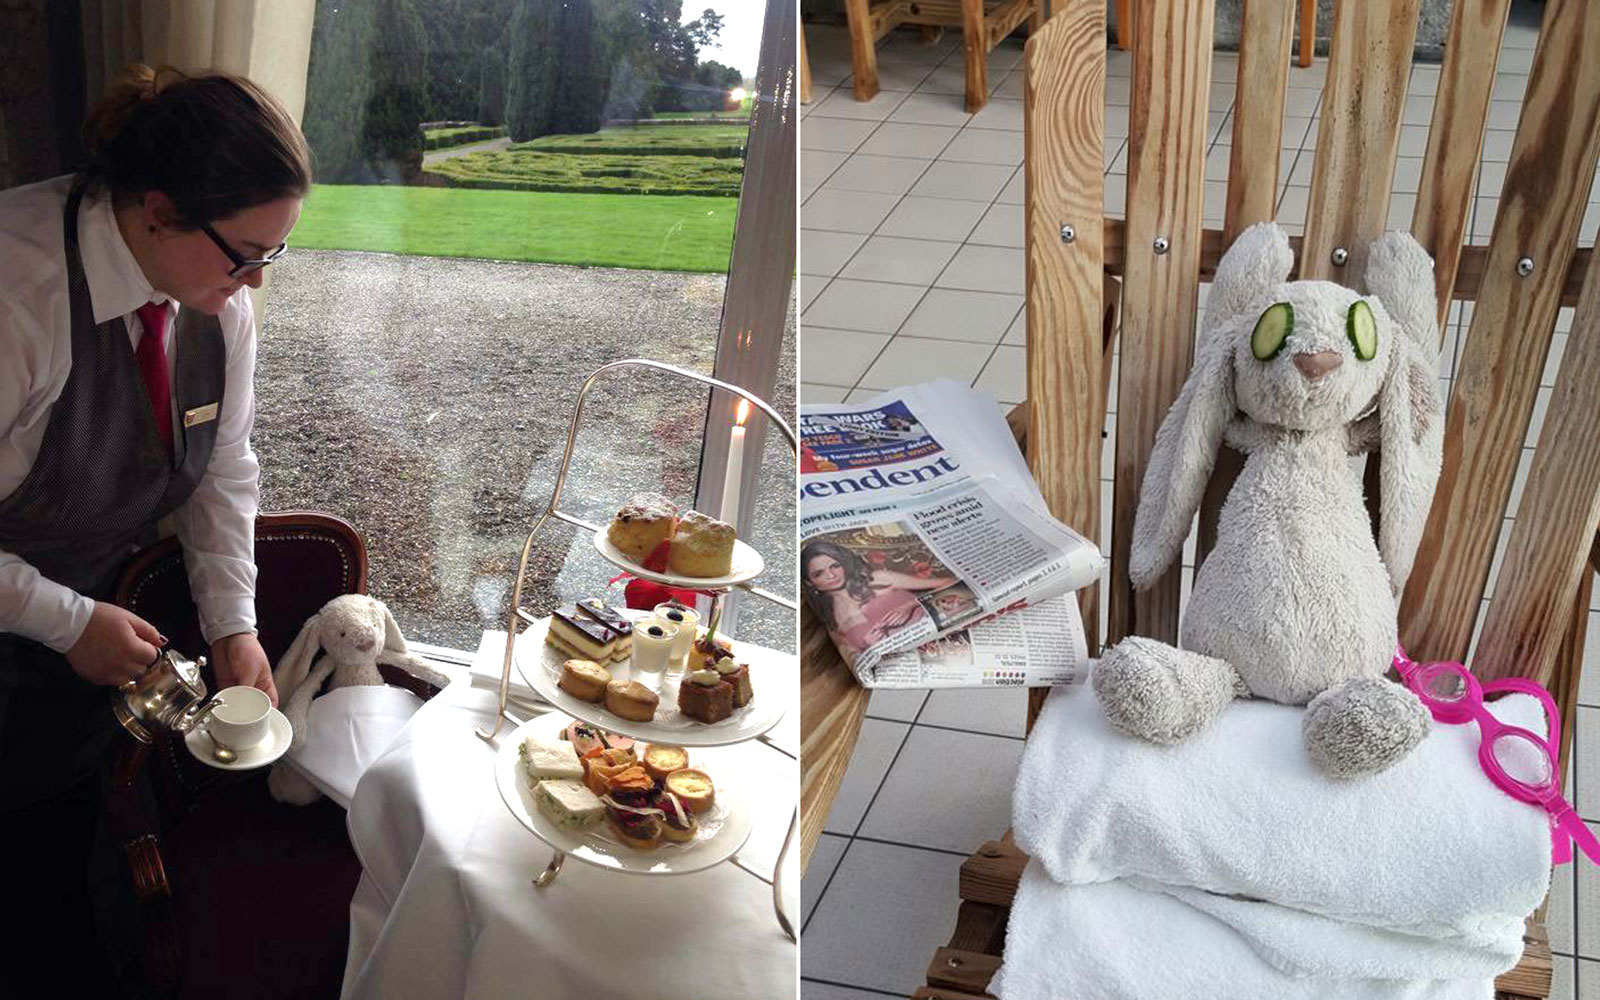 Irish Hotel Helps a Little Bunny Find its Way Home